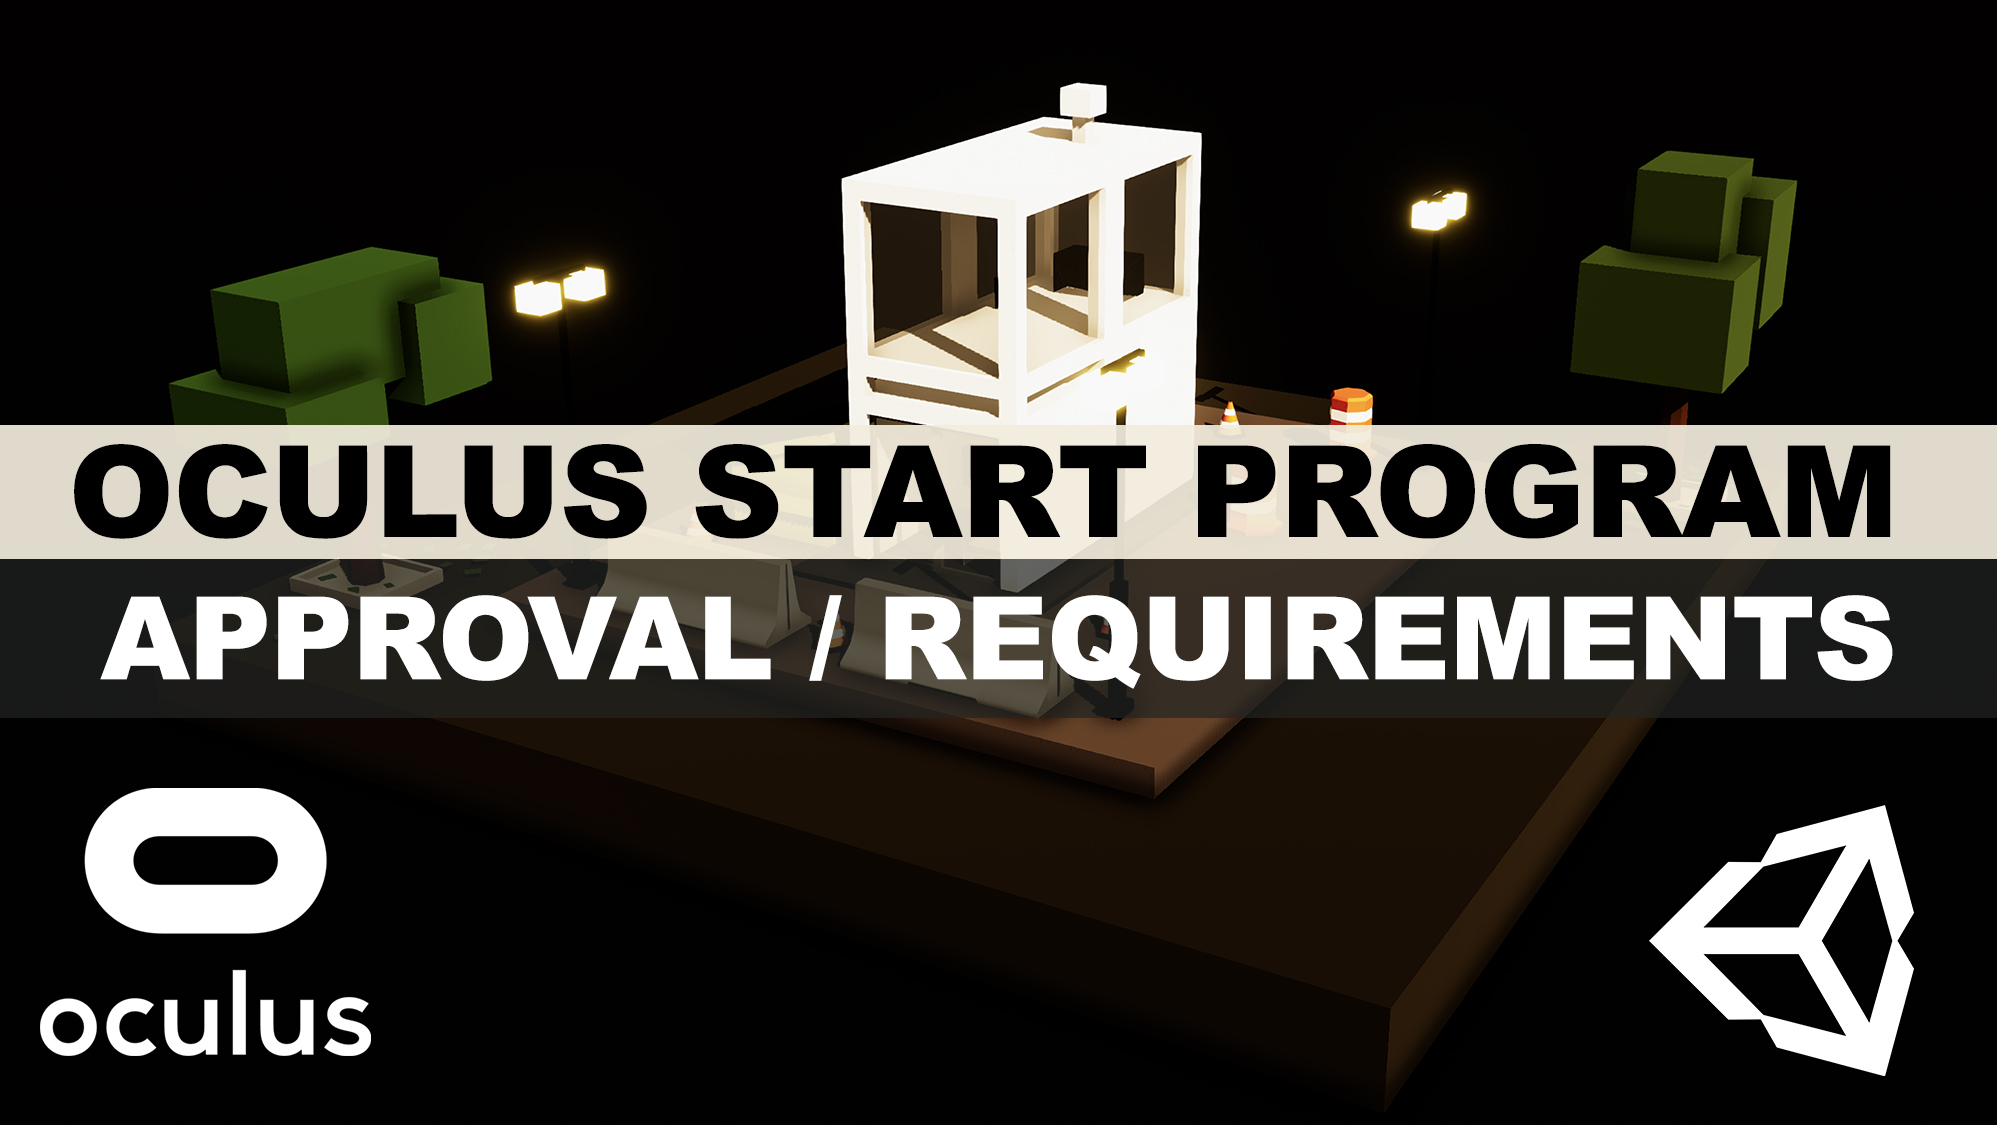 Oculus Start Program - How to get into the Oculus Start Program as an Unity3d developer?